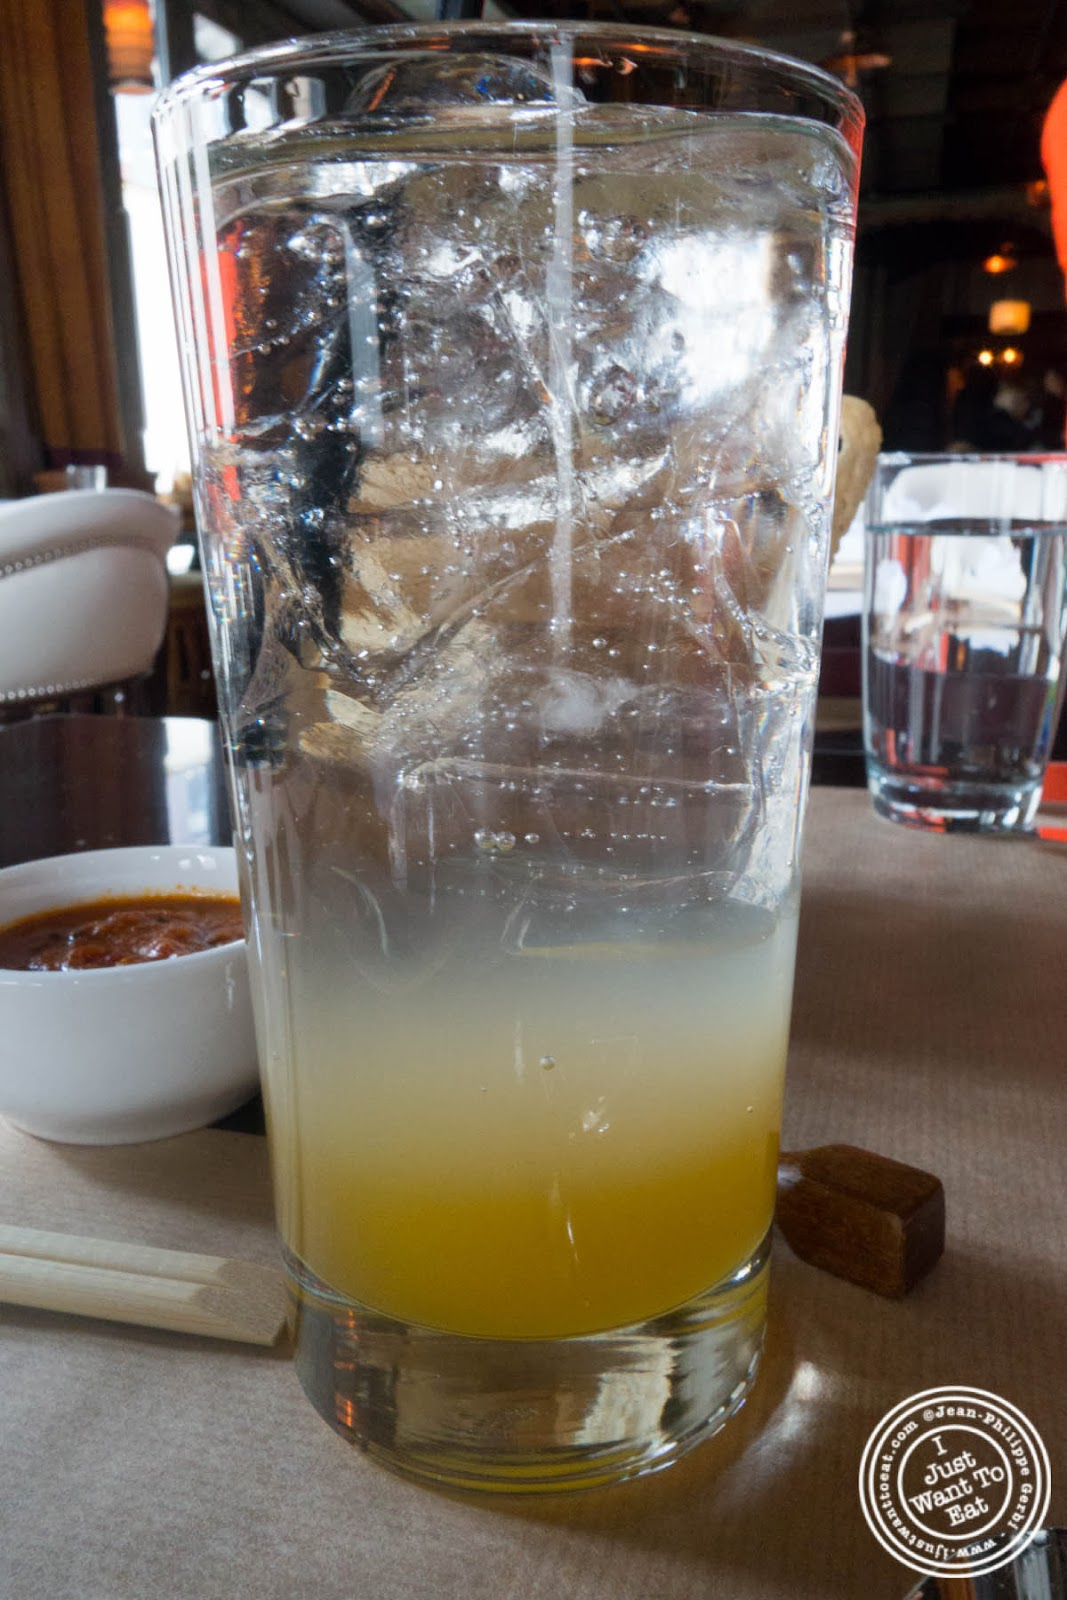 image of calamansi soda at Spice Market in the Meatpacking District, NYC, New York